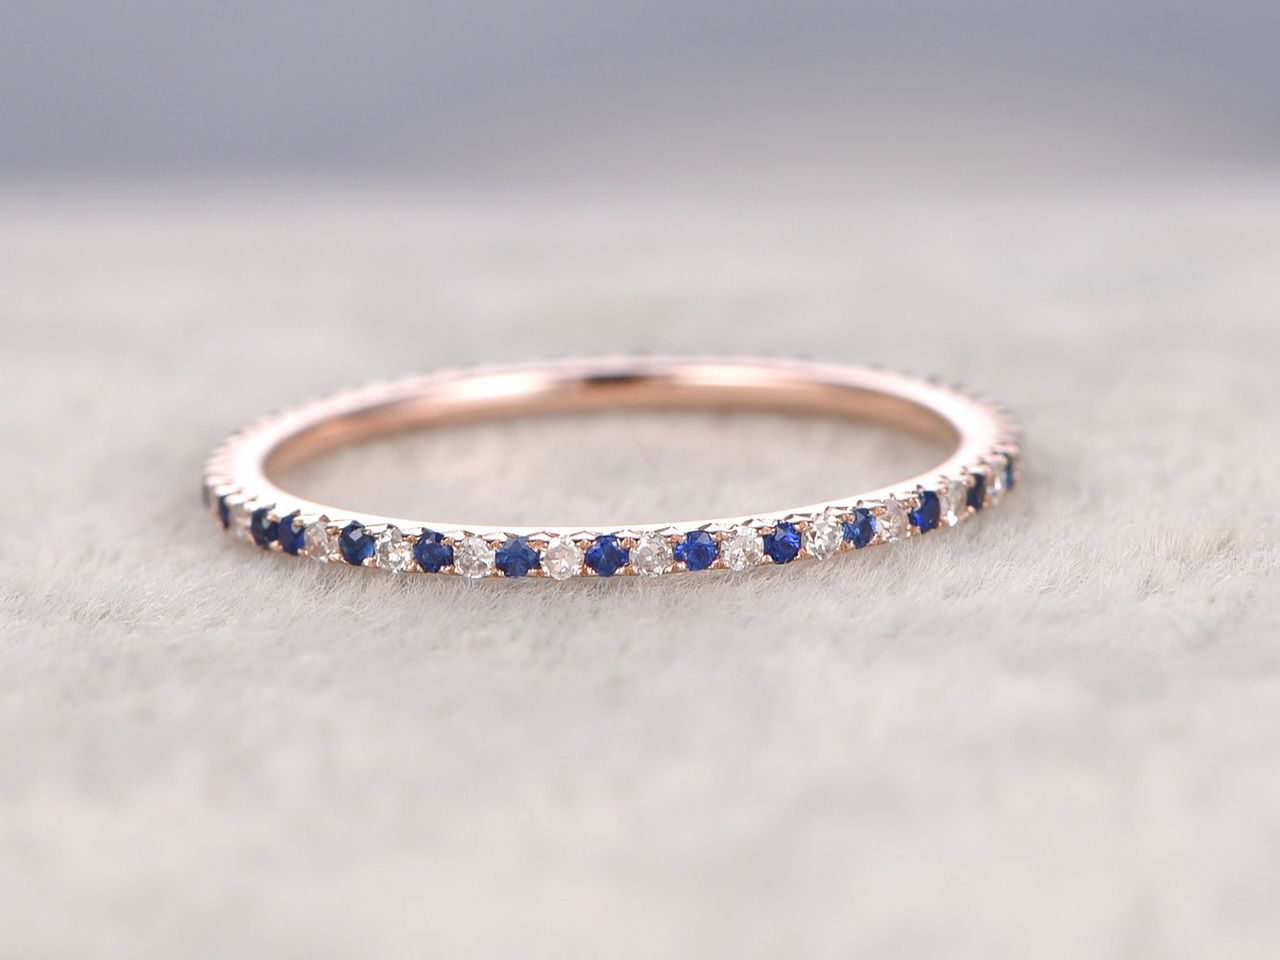 BBBGEM Offers Sapphire Wedding Ringssee Our Diamond Bands In Rose Goldwhite Gold Or Yellow GoldAll Can Be Matching